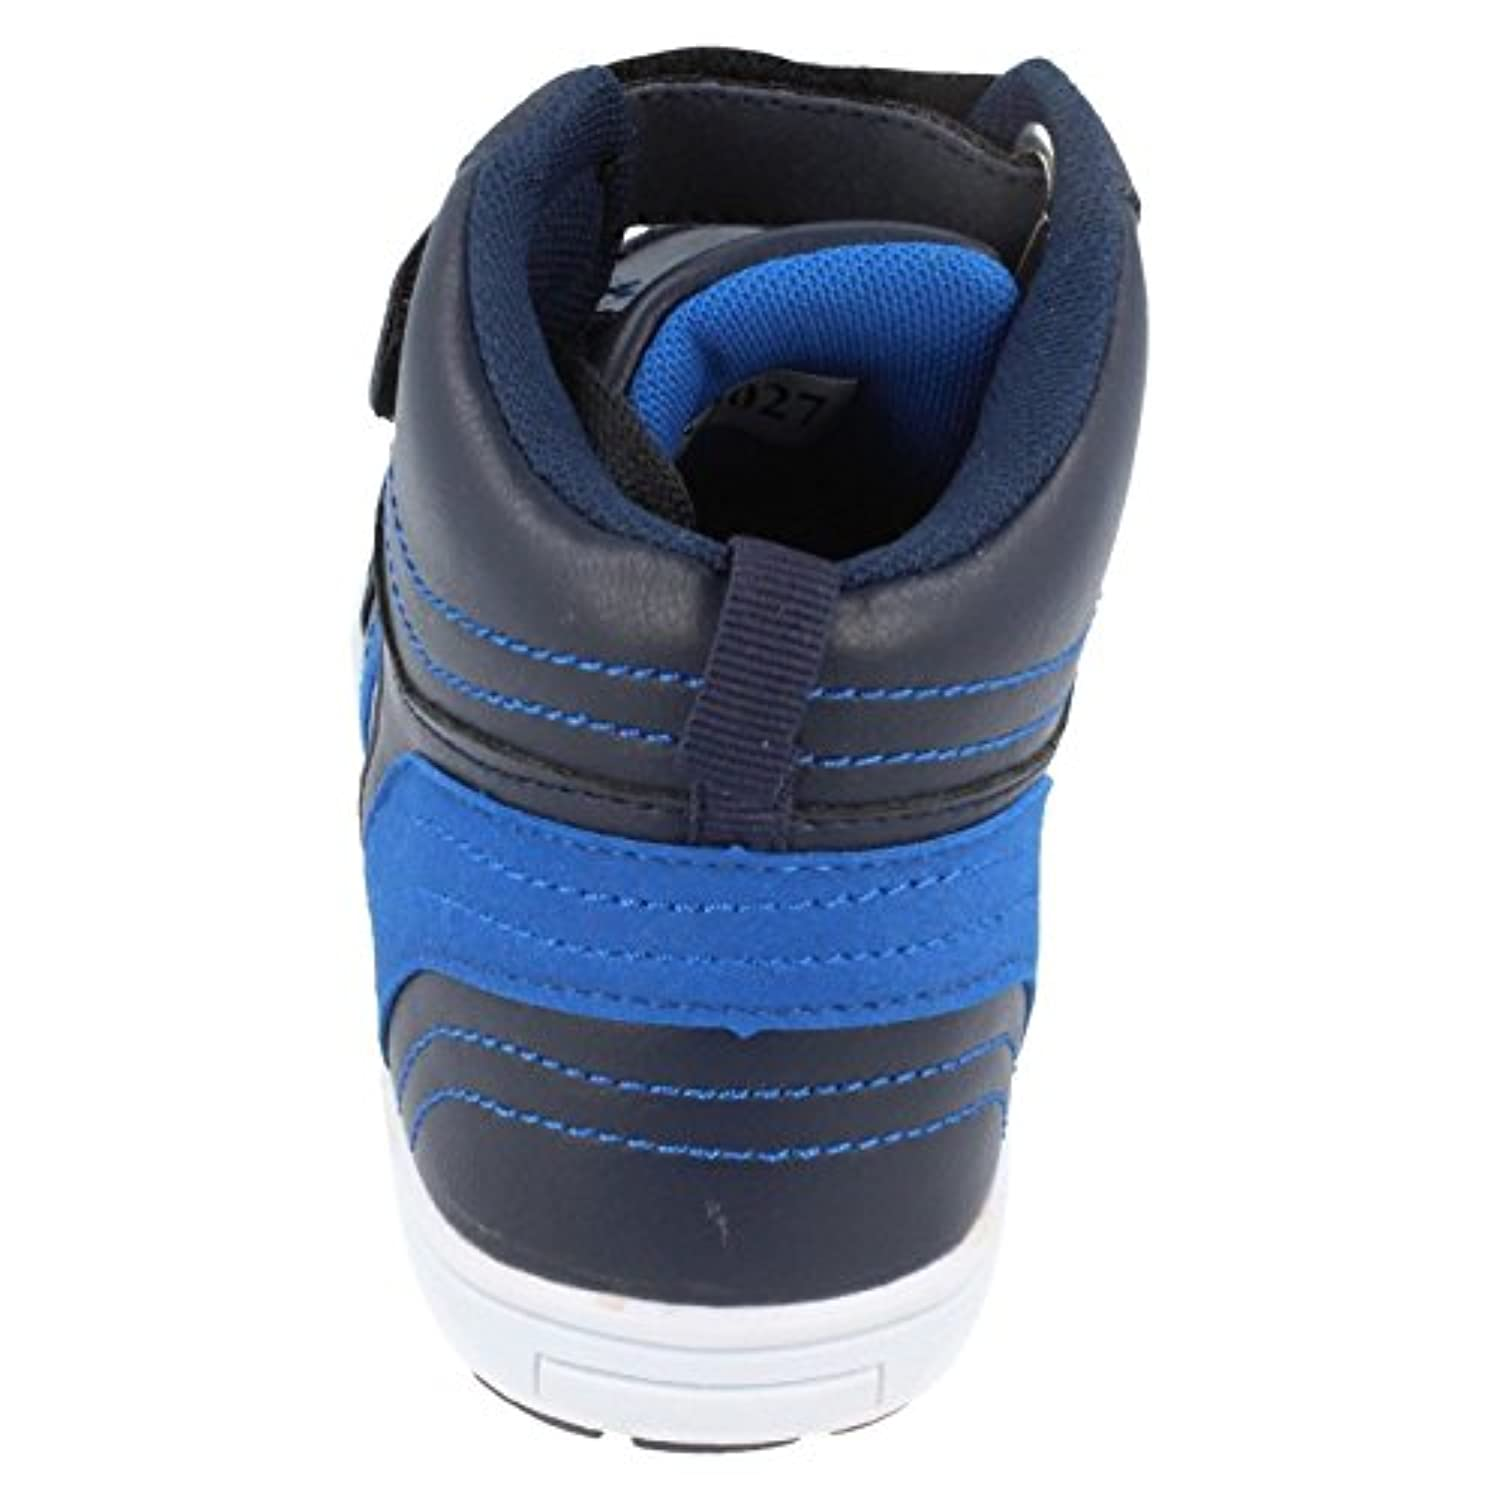 Boys JCDees Hi Top Trainers N2027 Navy Size 1 UK